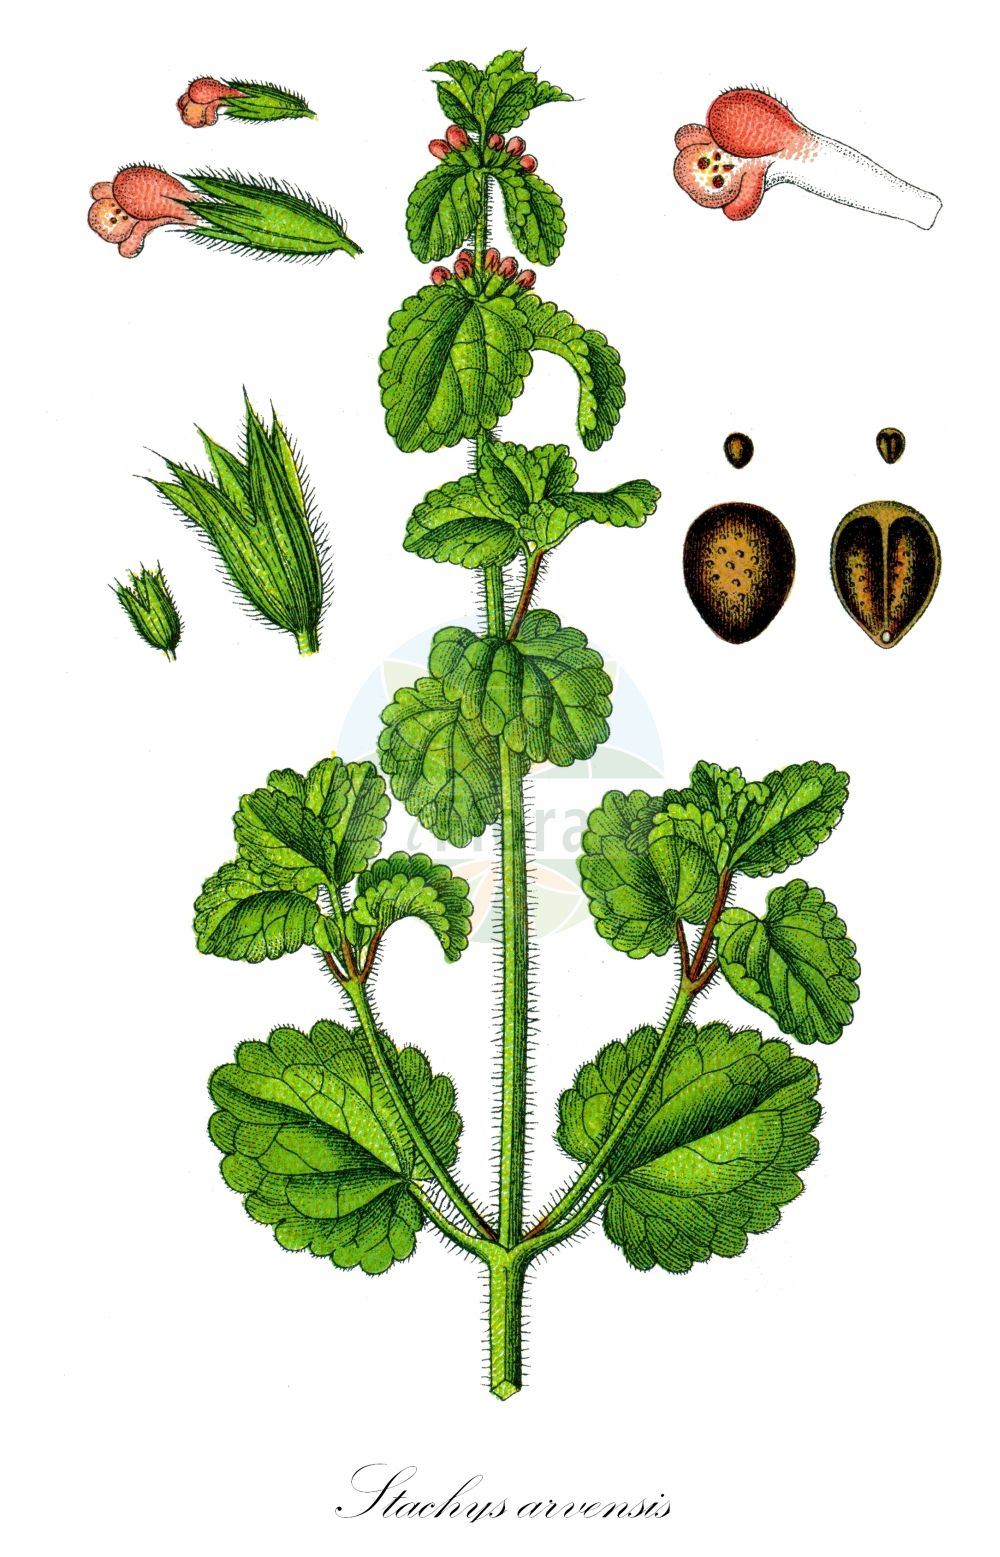 Historische Abbildung von Stachys arvensis (Acker-Ziest - Field Woundwort). Das Bild zeigt Blatt, Bluete, Frucht und Same. ---- Historical Drawing of Stachys arvensis (Acker-Ziest - Field Woundwort).The image is showing leaf, flower, fruit and seed.(Stachys arvensis,Acker-Ziest,Field Woundwort,Cardiaca arvensis,Glechoma arvensis,Glechoma belgica,Glechoma marrubiastrum,Stachys brasiliensis,Trixago arvensis,Trixago colorata,Trixago cordifolia,Trixago punctata,Trixella arvensis,Corn Woundwort,Field-nettle Betony,Staggerweed,Stachys,Ziest,Hedgenettle,Lamiaceae,Lippenbluetengewaechse;Lippenbluetler,Nettle family,Blatt,Bluete,Frucht,Same,leaf,flower,fruit,seed,Sturm (1796f))